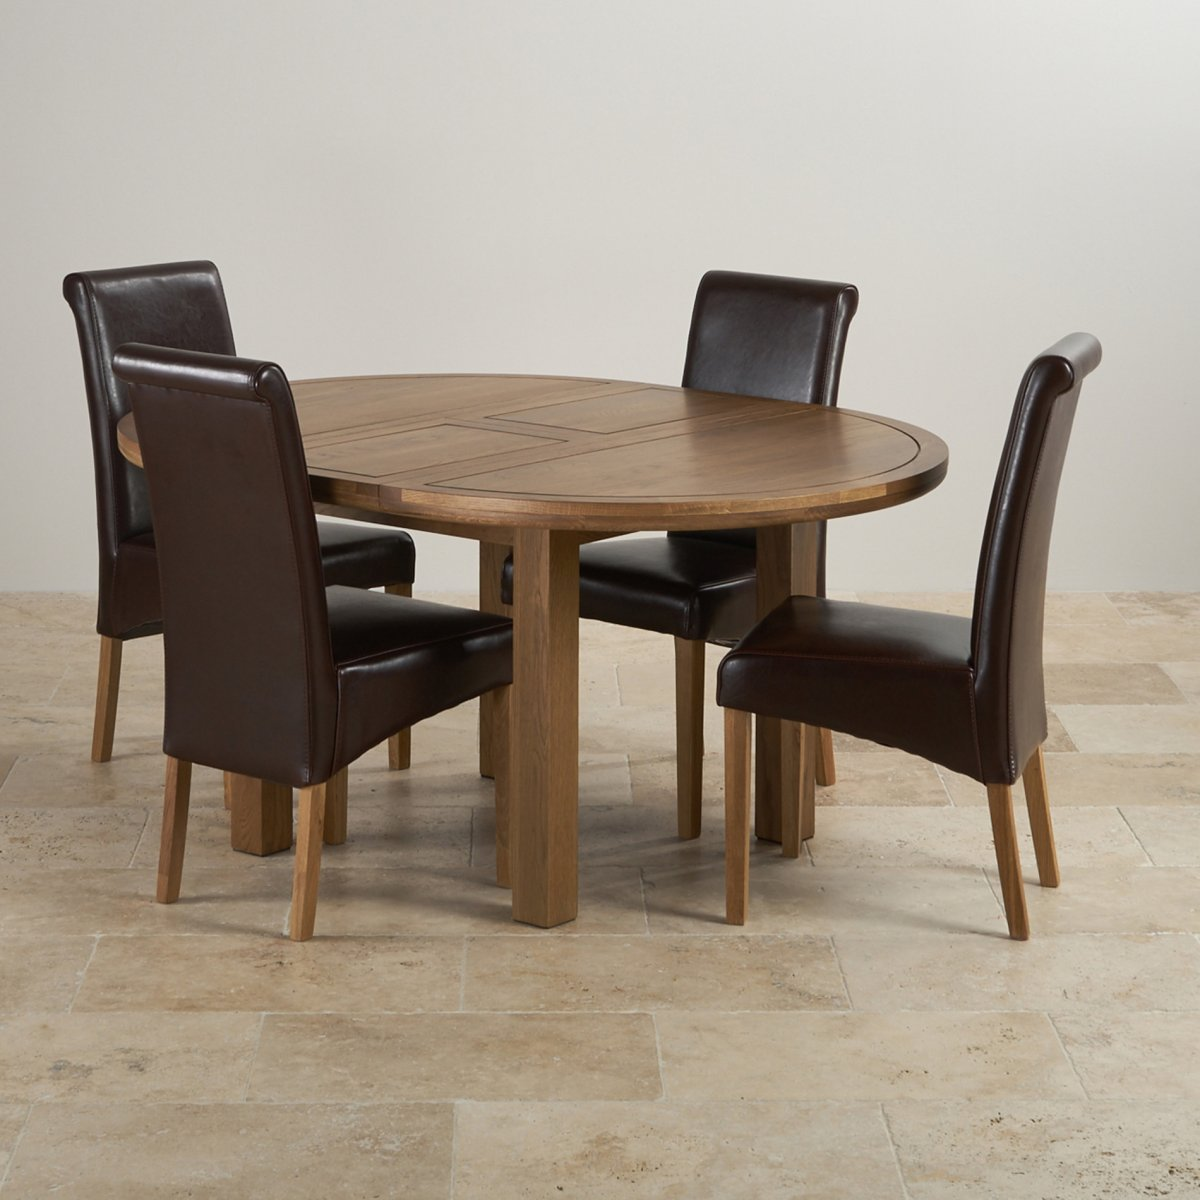 Knightsbridge round extending dining table set table 4 for Round dining table for 4